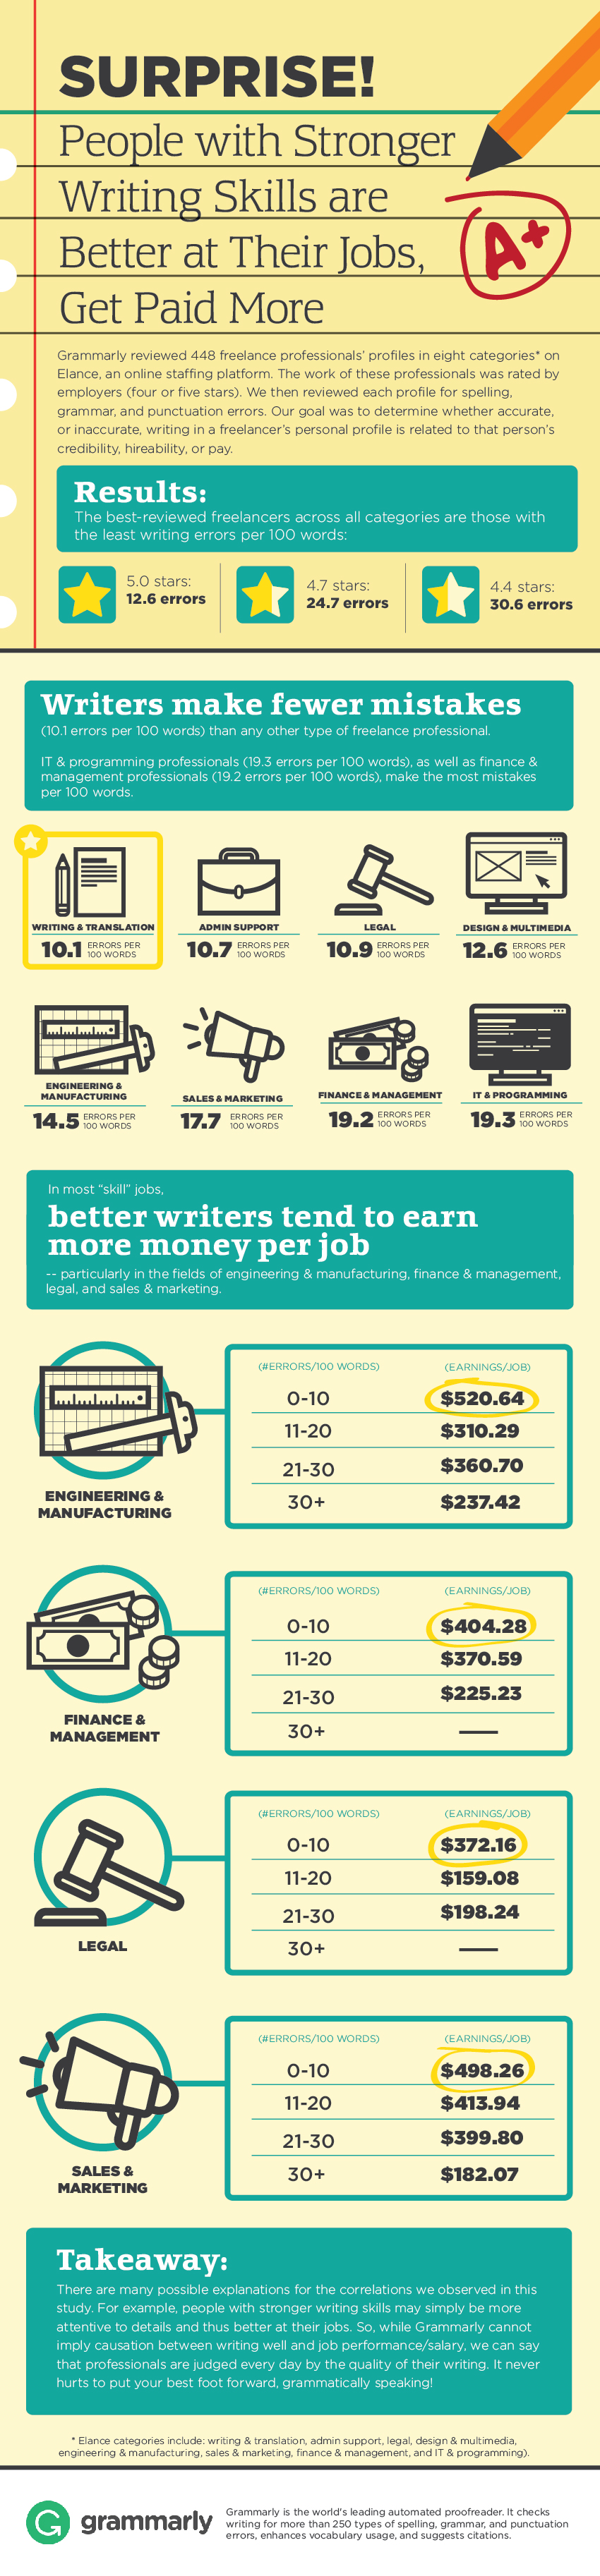 Writing Skills and improved professional careers, more pay infographic